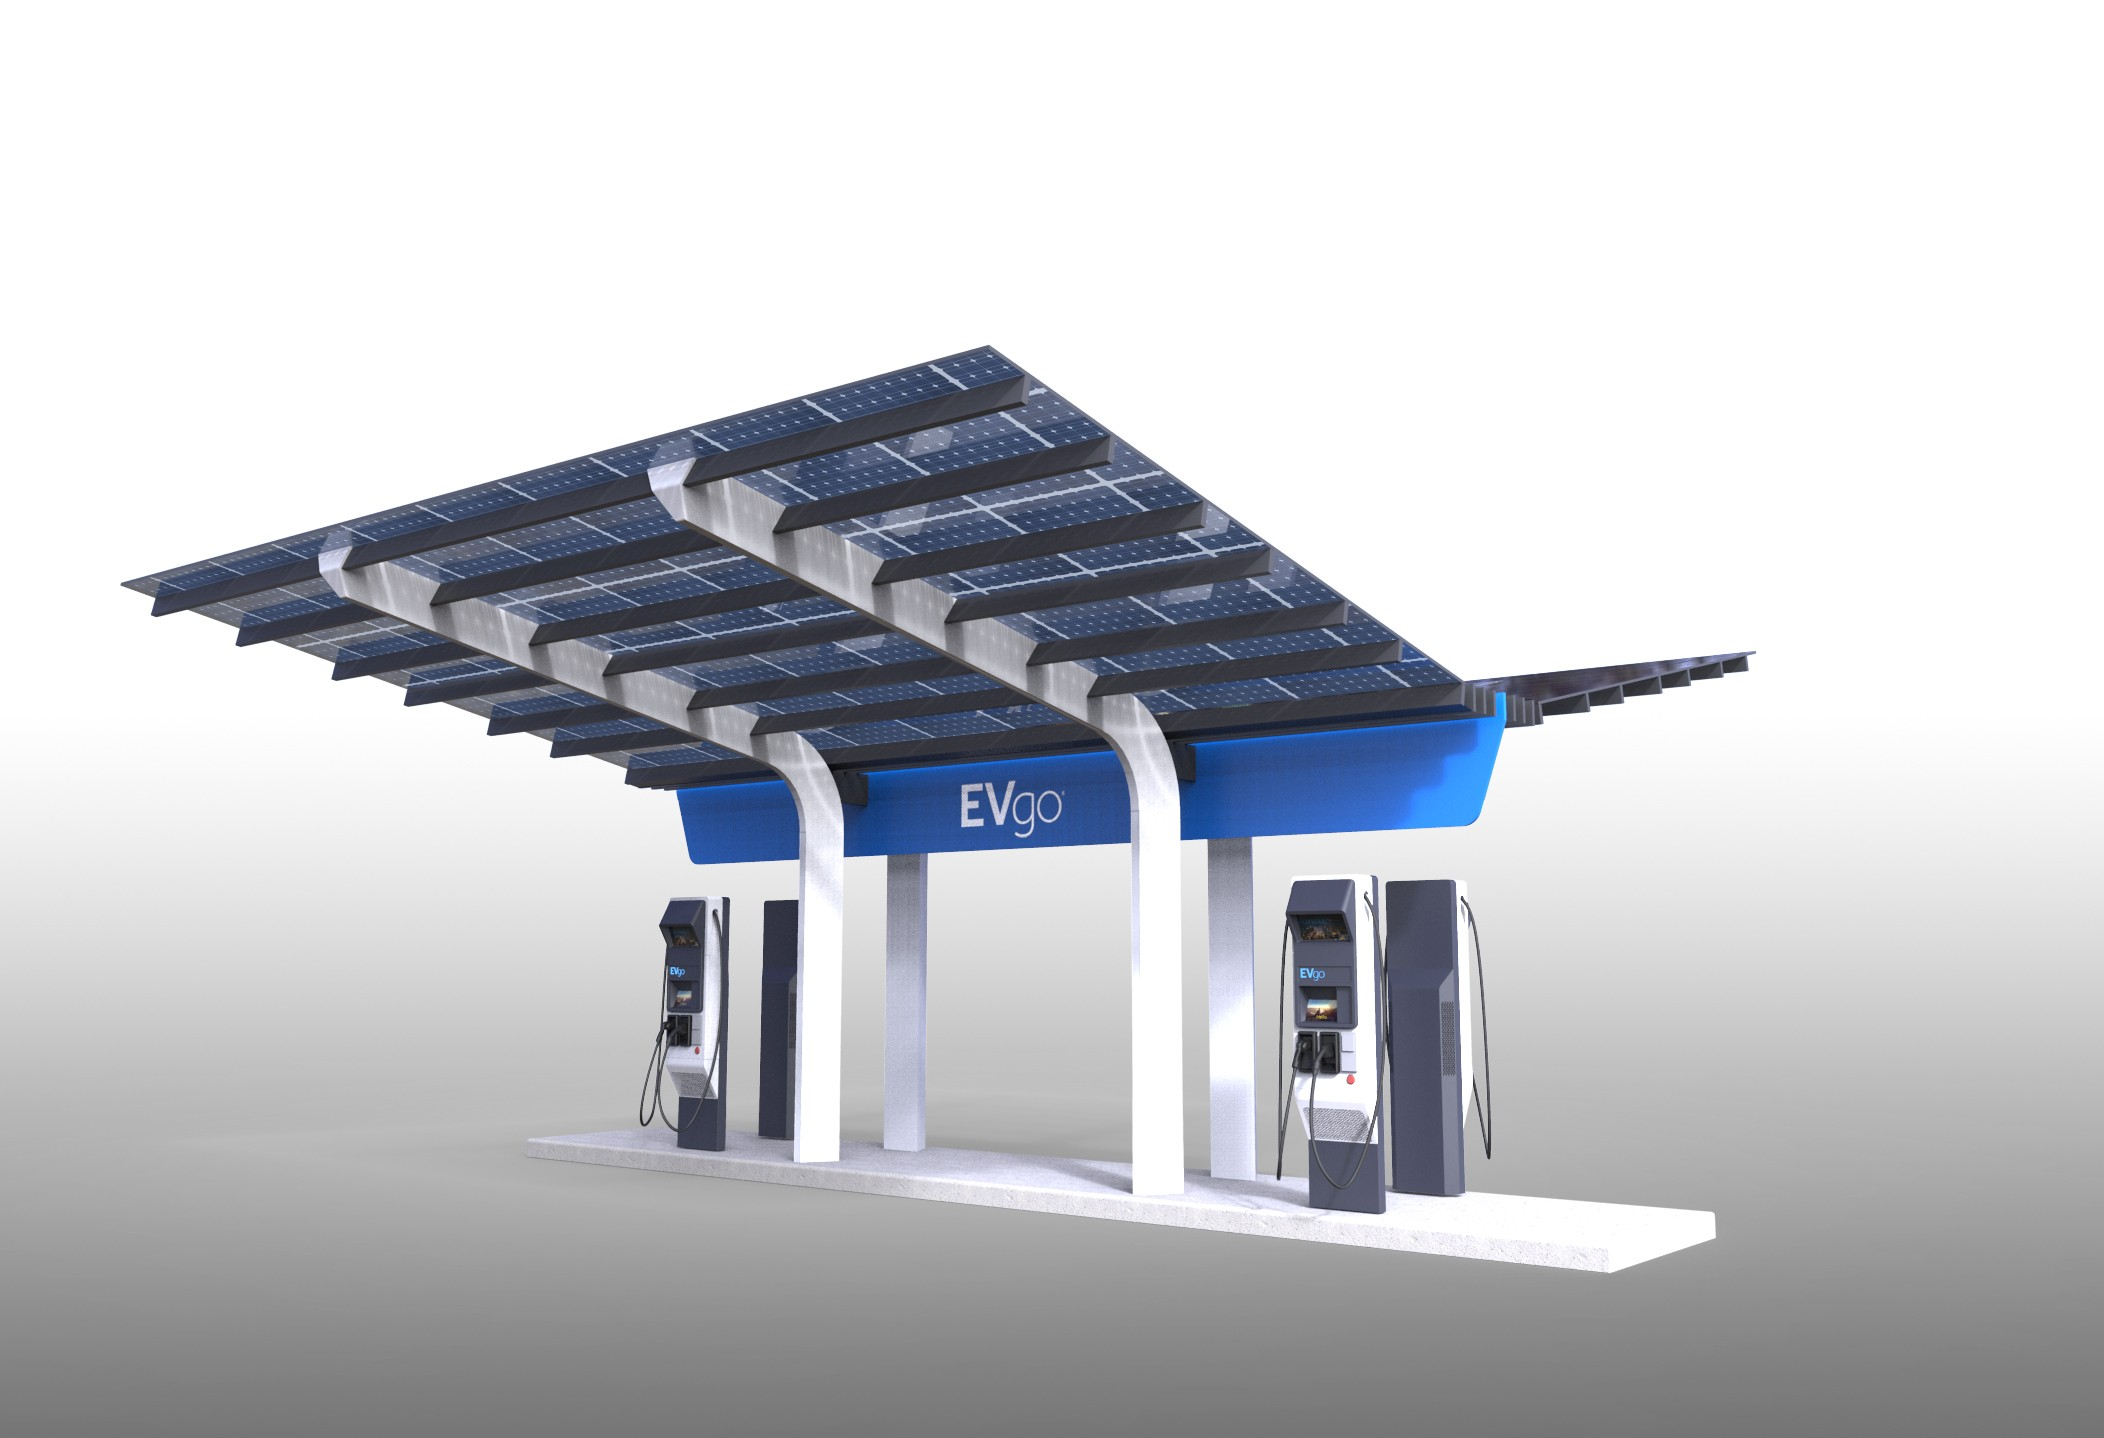 Ev Charging Stations >> America's First High-Power EV Charging Station Has Begun Its Construction Phase - autoevolution